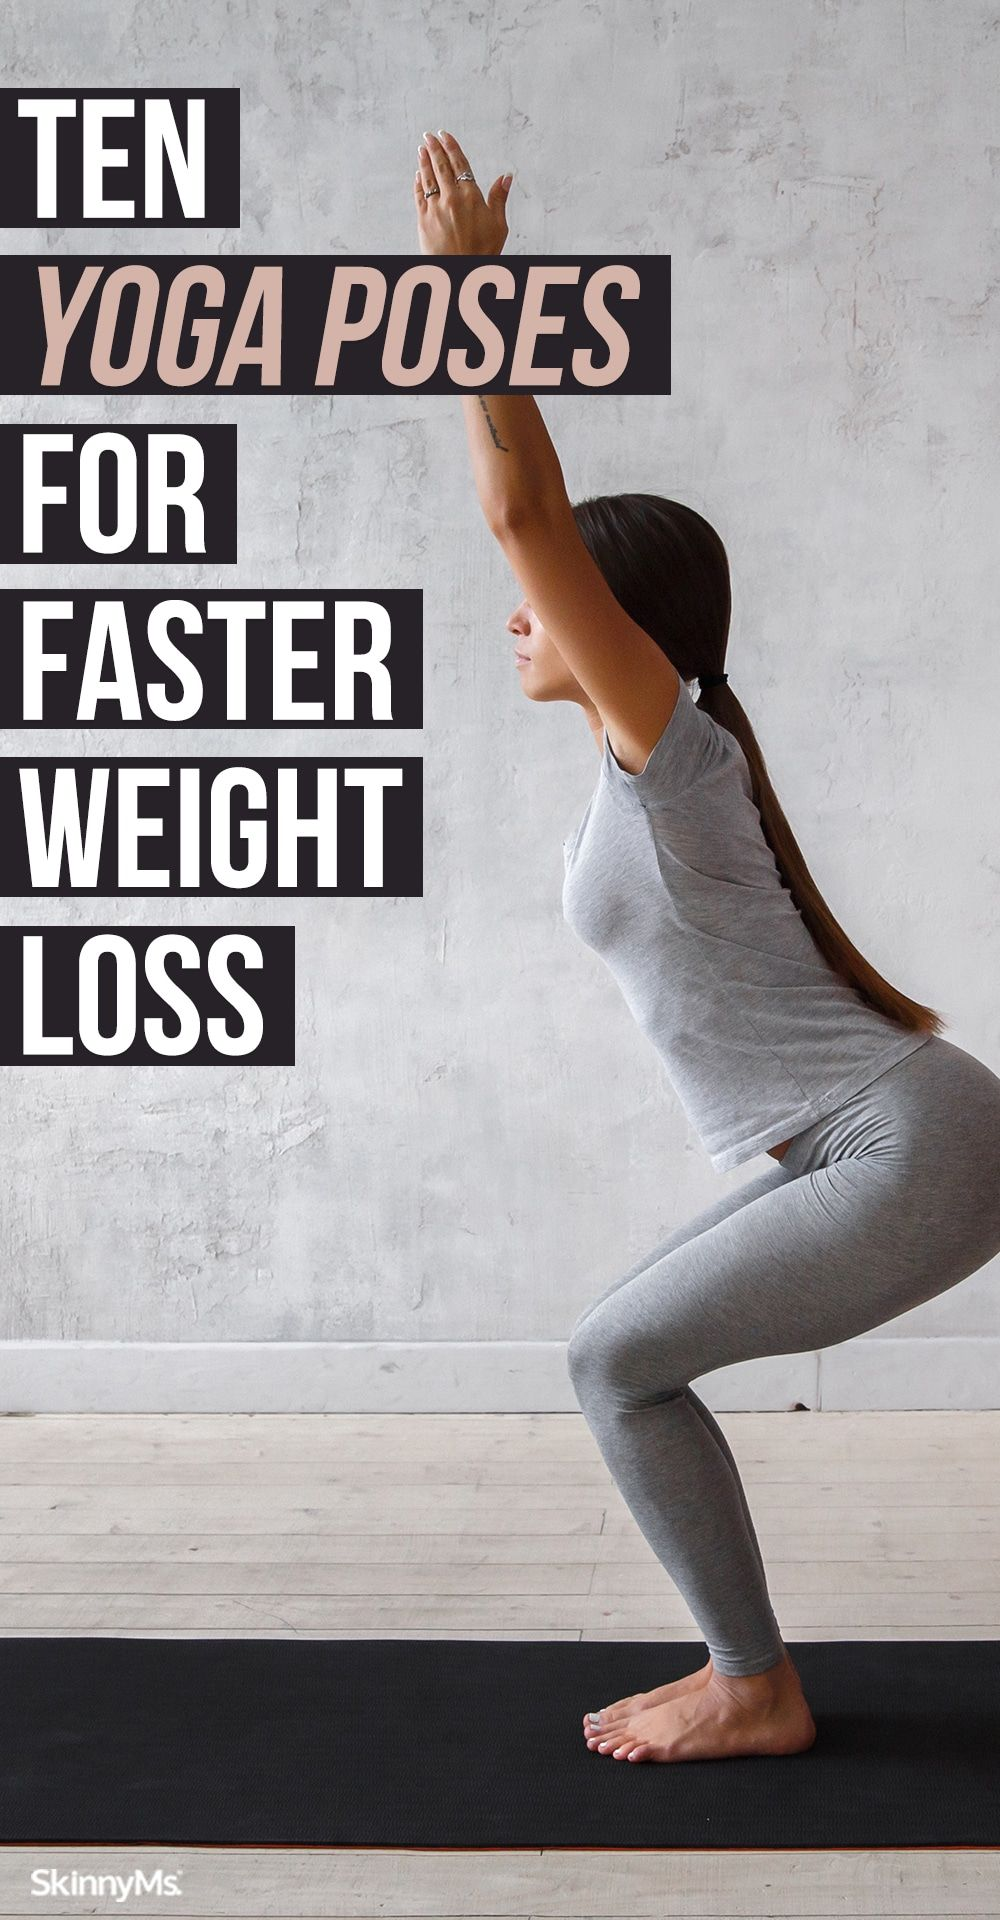 10 Yoga Poses for Faster Weight Loss